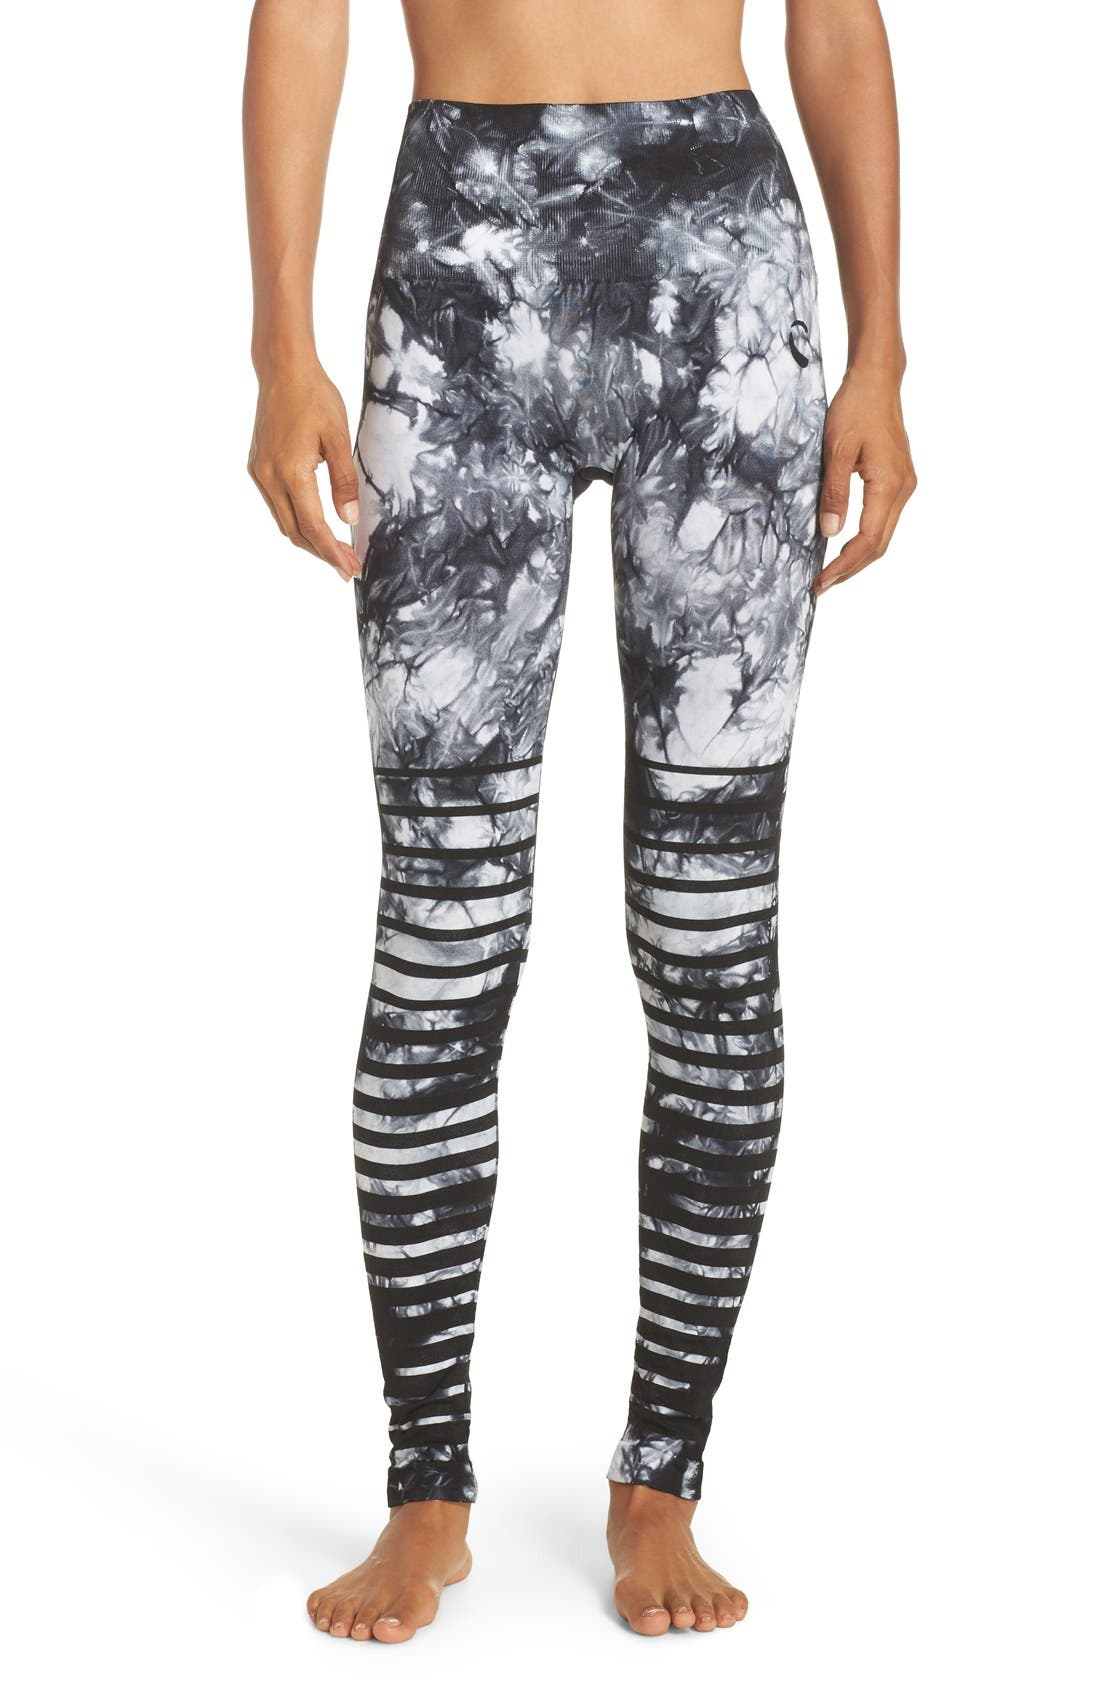 Climawear 'Front Runner' High Waist Seamless Leggings